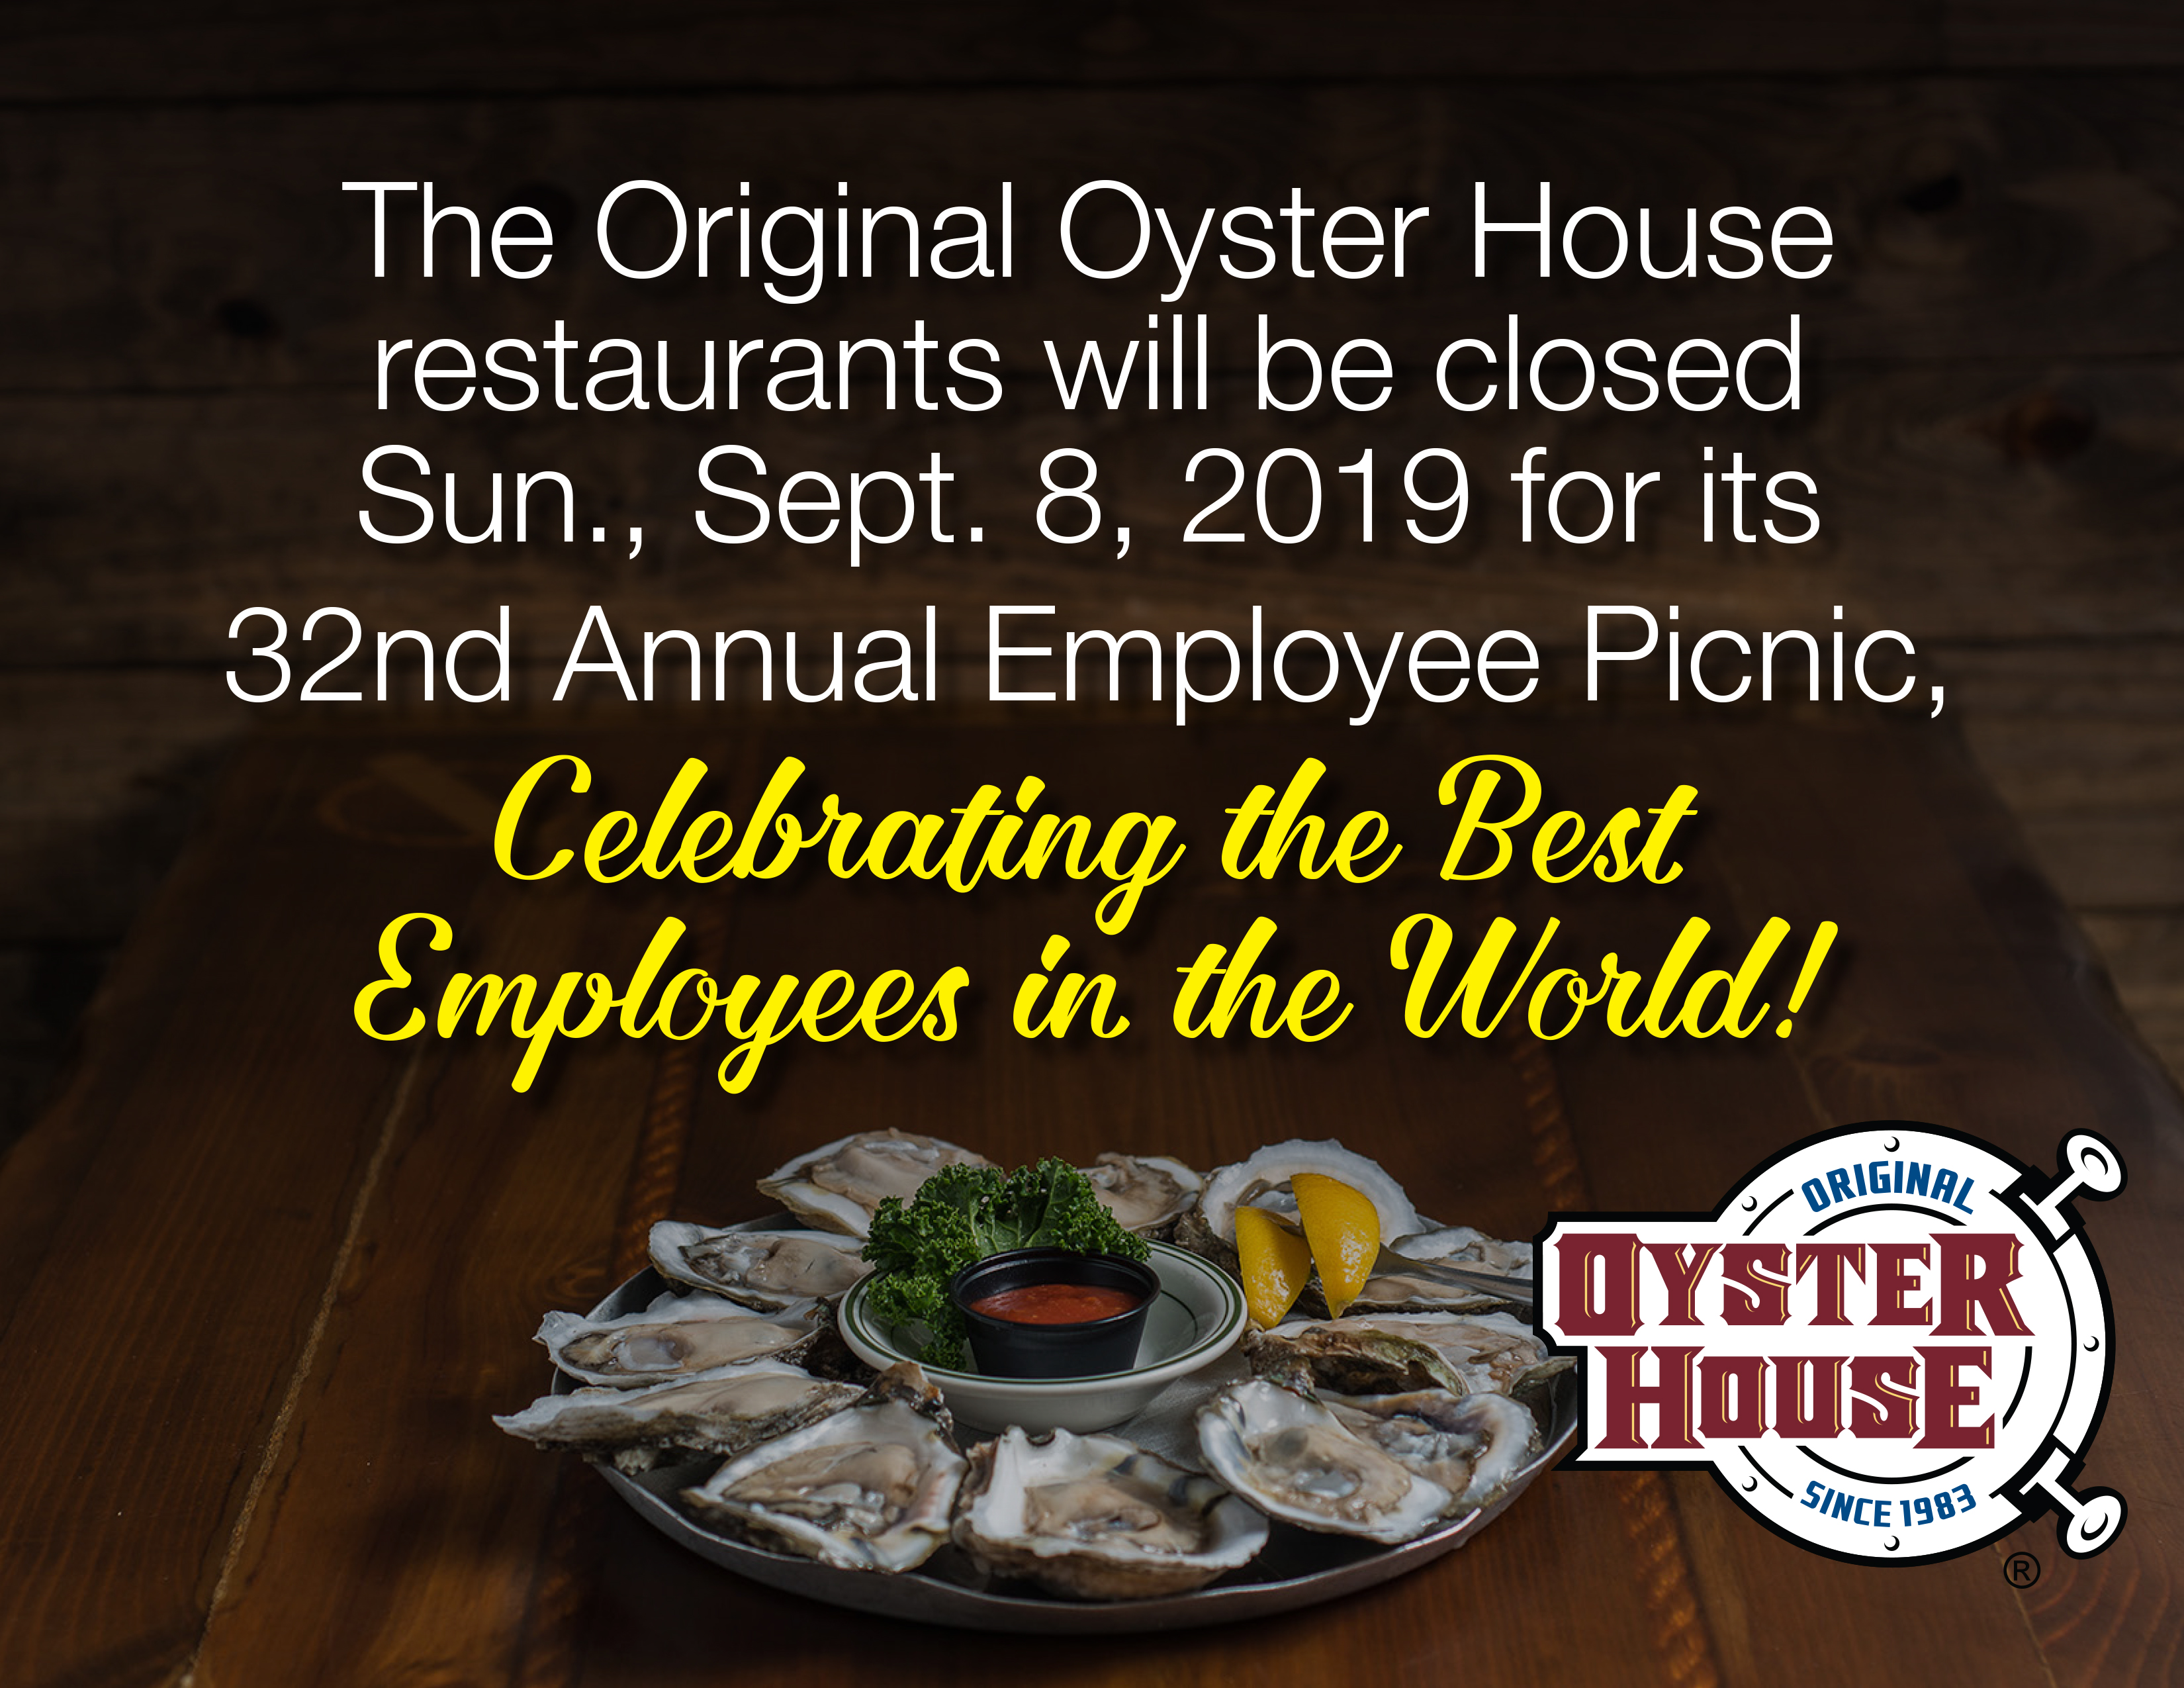 Original Oyster House Restaurants will be closed Sunday poster